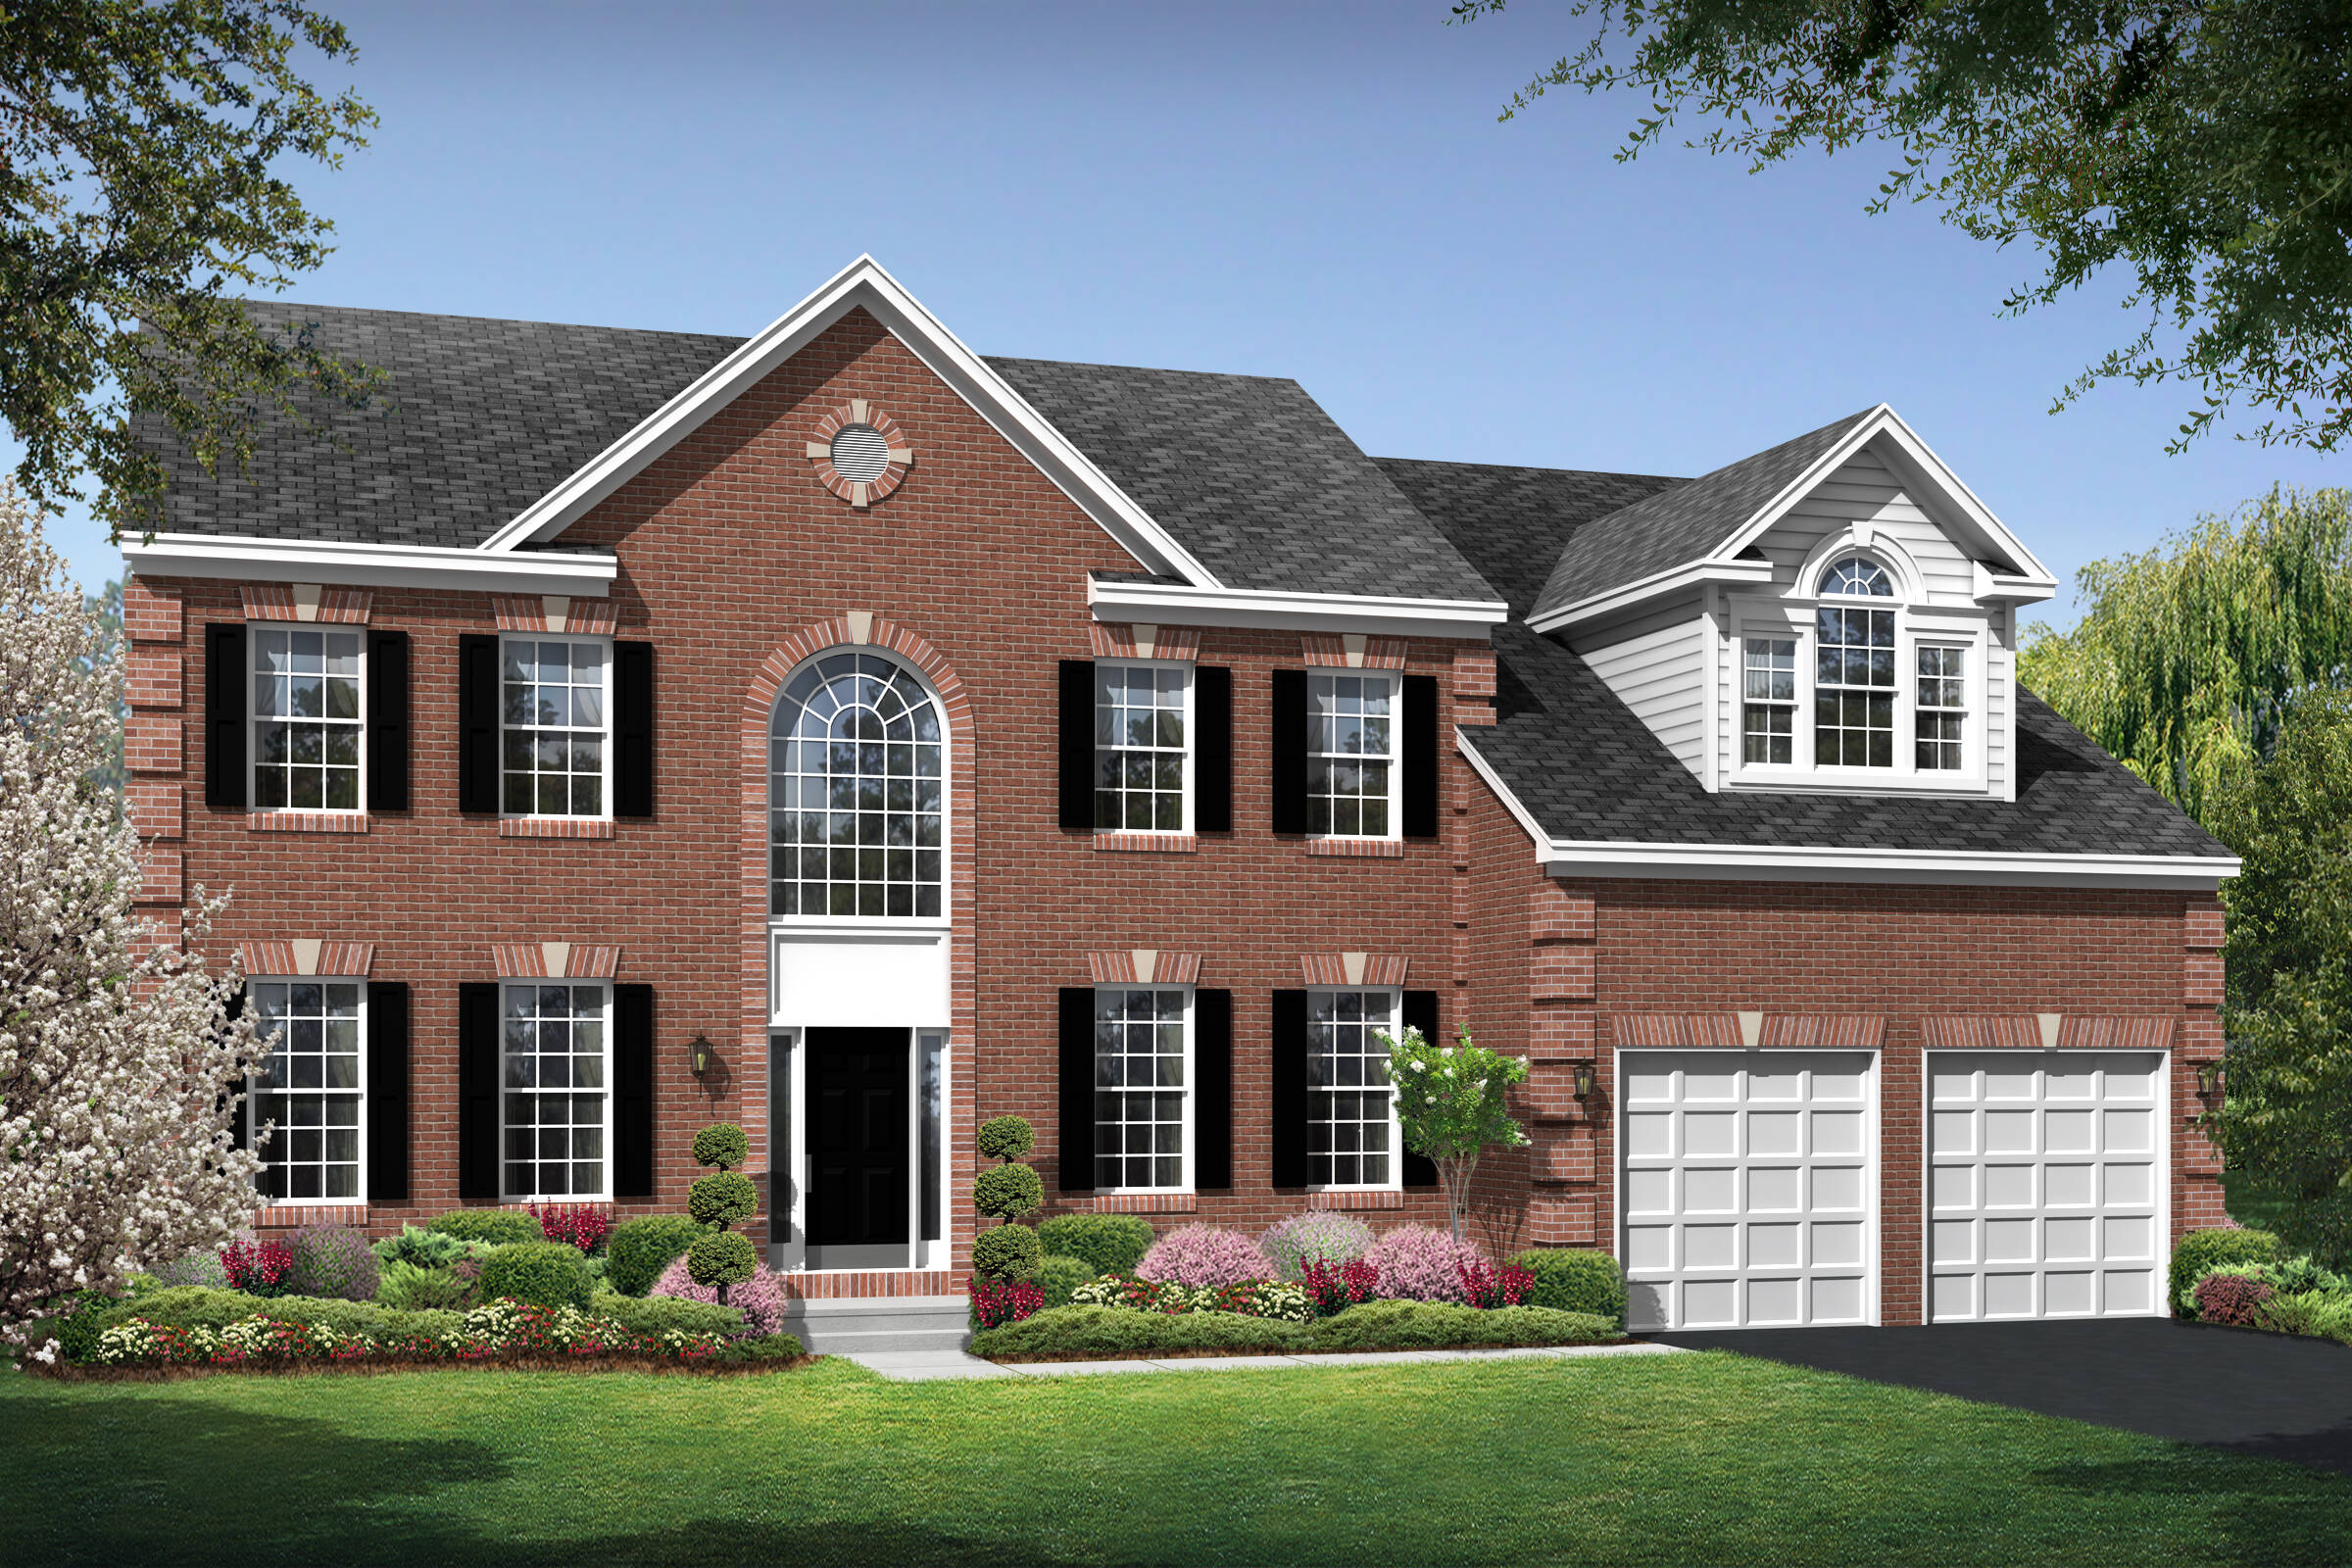 colorado traditional new homes at reserves at leeland station in virginia